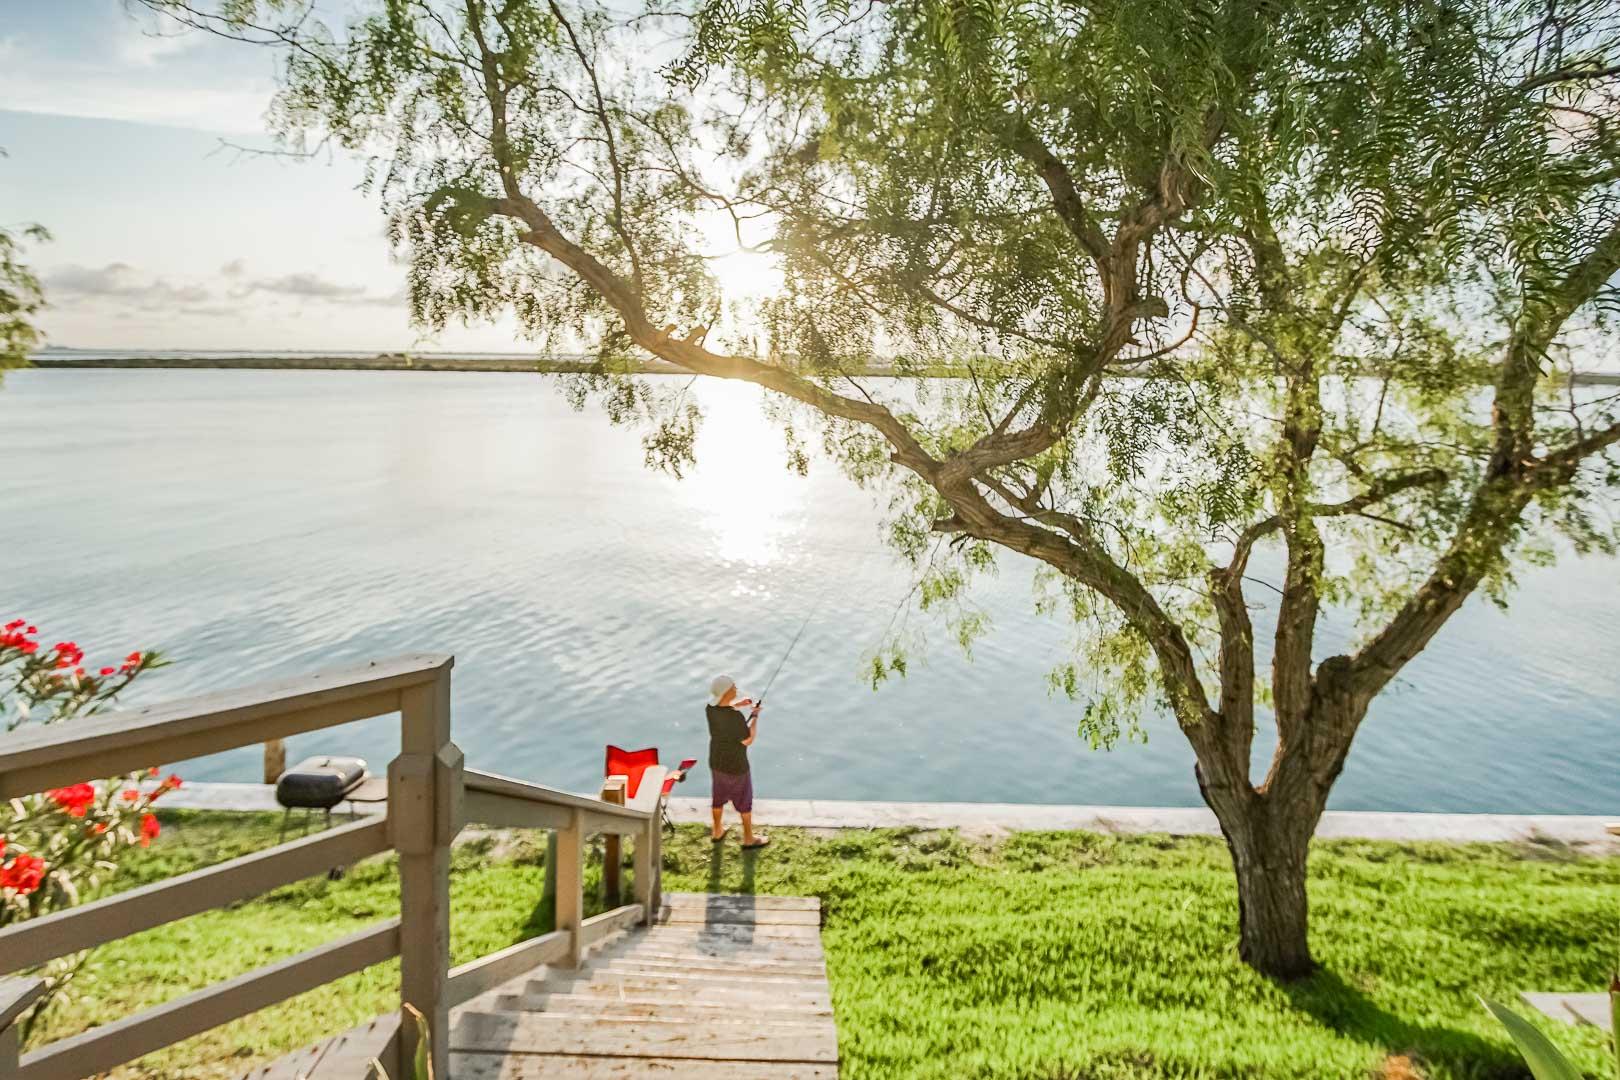 A peaceful lakeside view at VRI's Puente Vista Resort in Texas.